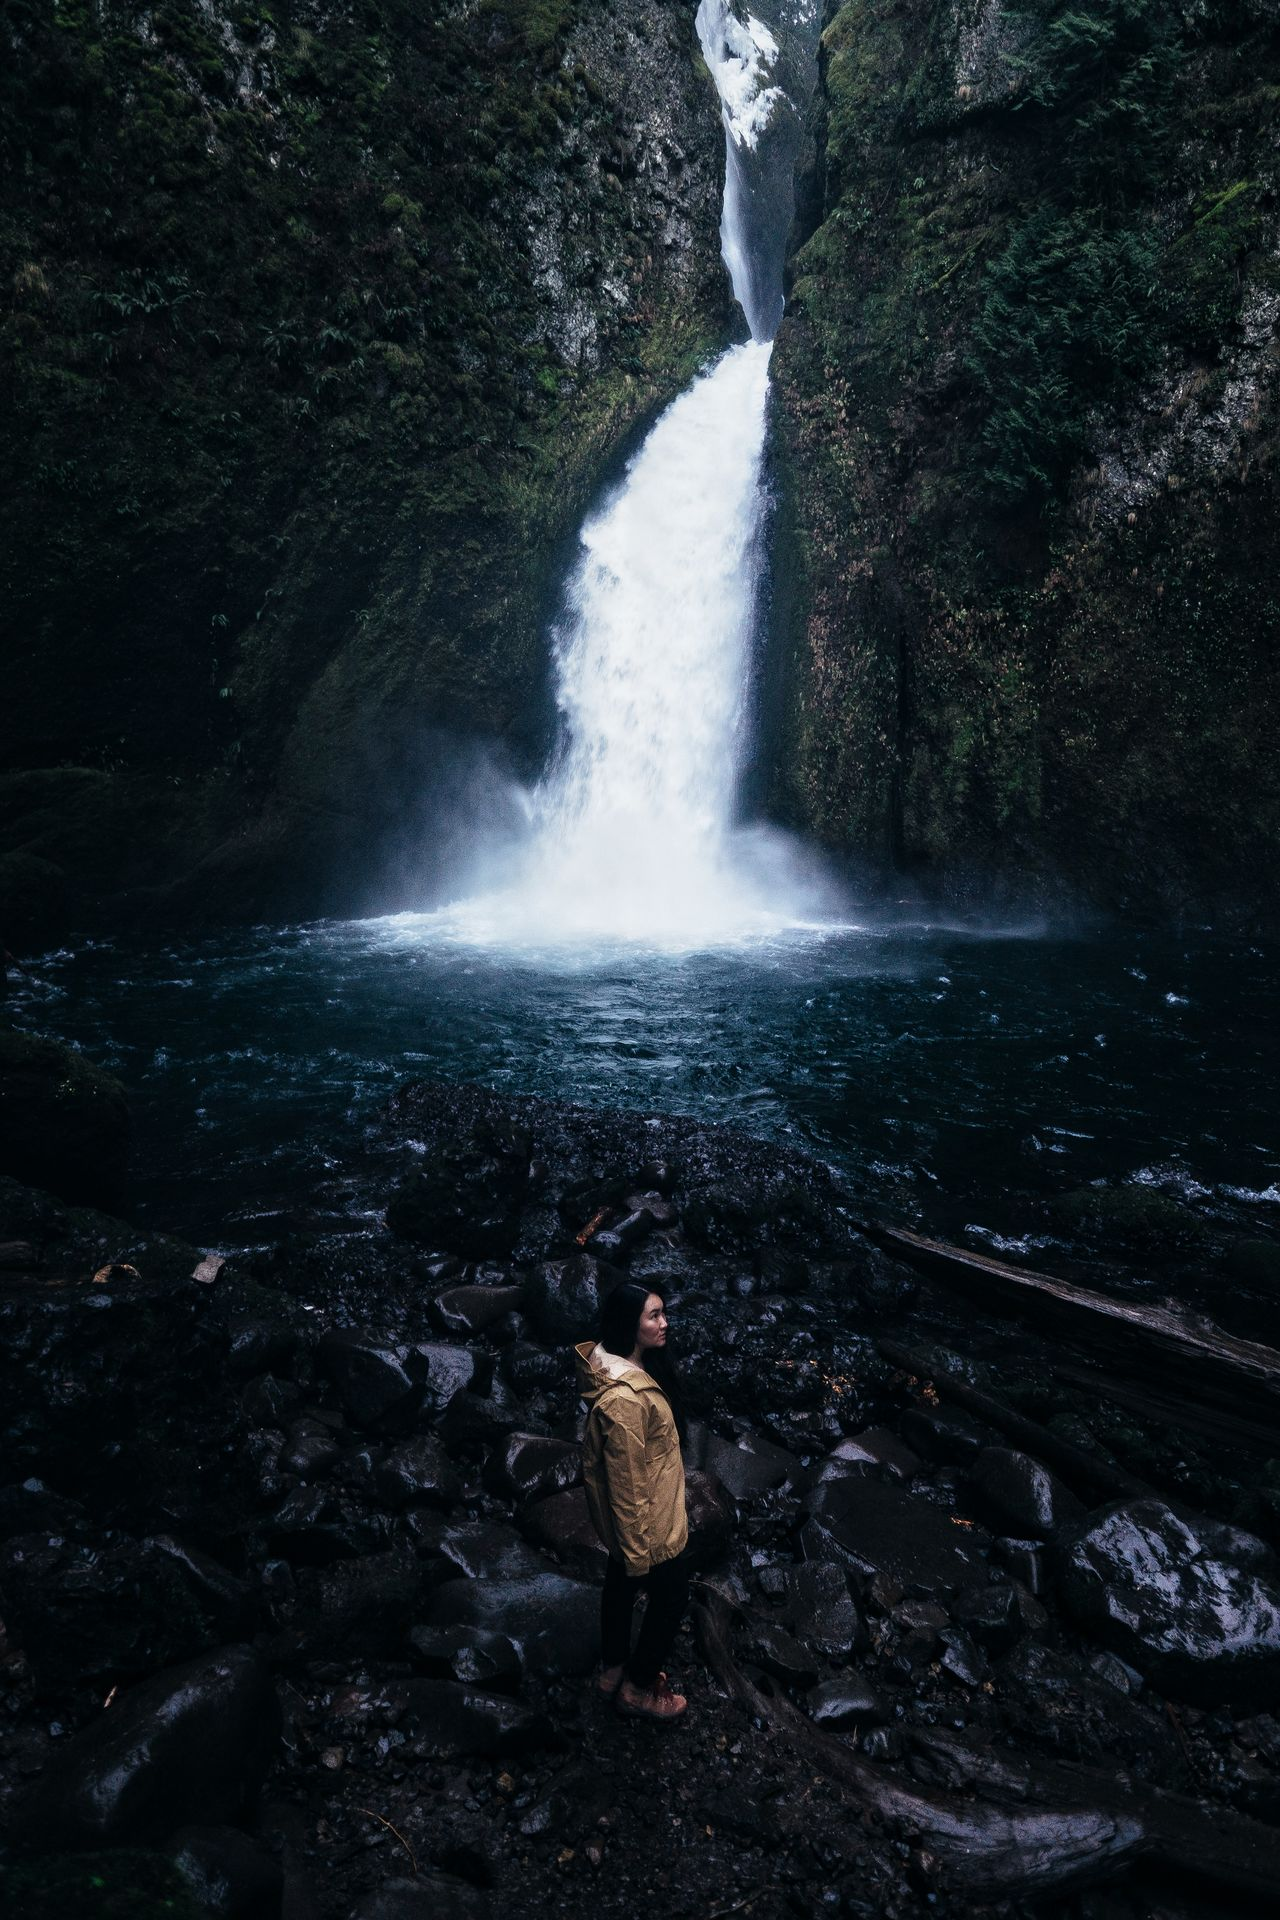 Rains Journal Water Beauty In Nature Outdoors Nature Motion Waterfall Splashing Scenics Tranquil Scene Adventure Winter Cold Temperature Tourism PNW Travel Destinations EyeEm Best Shots One Person Landscape Oregon Wild Vista Solitude Finding New Frontiers Miles Away